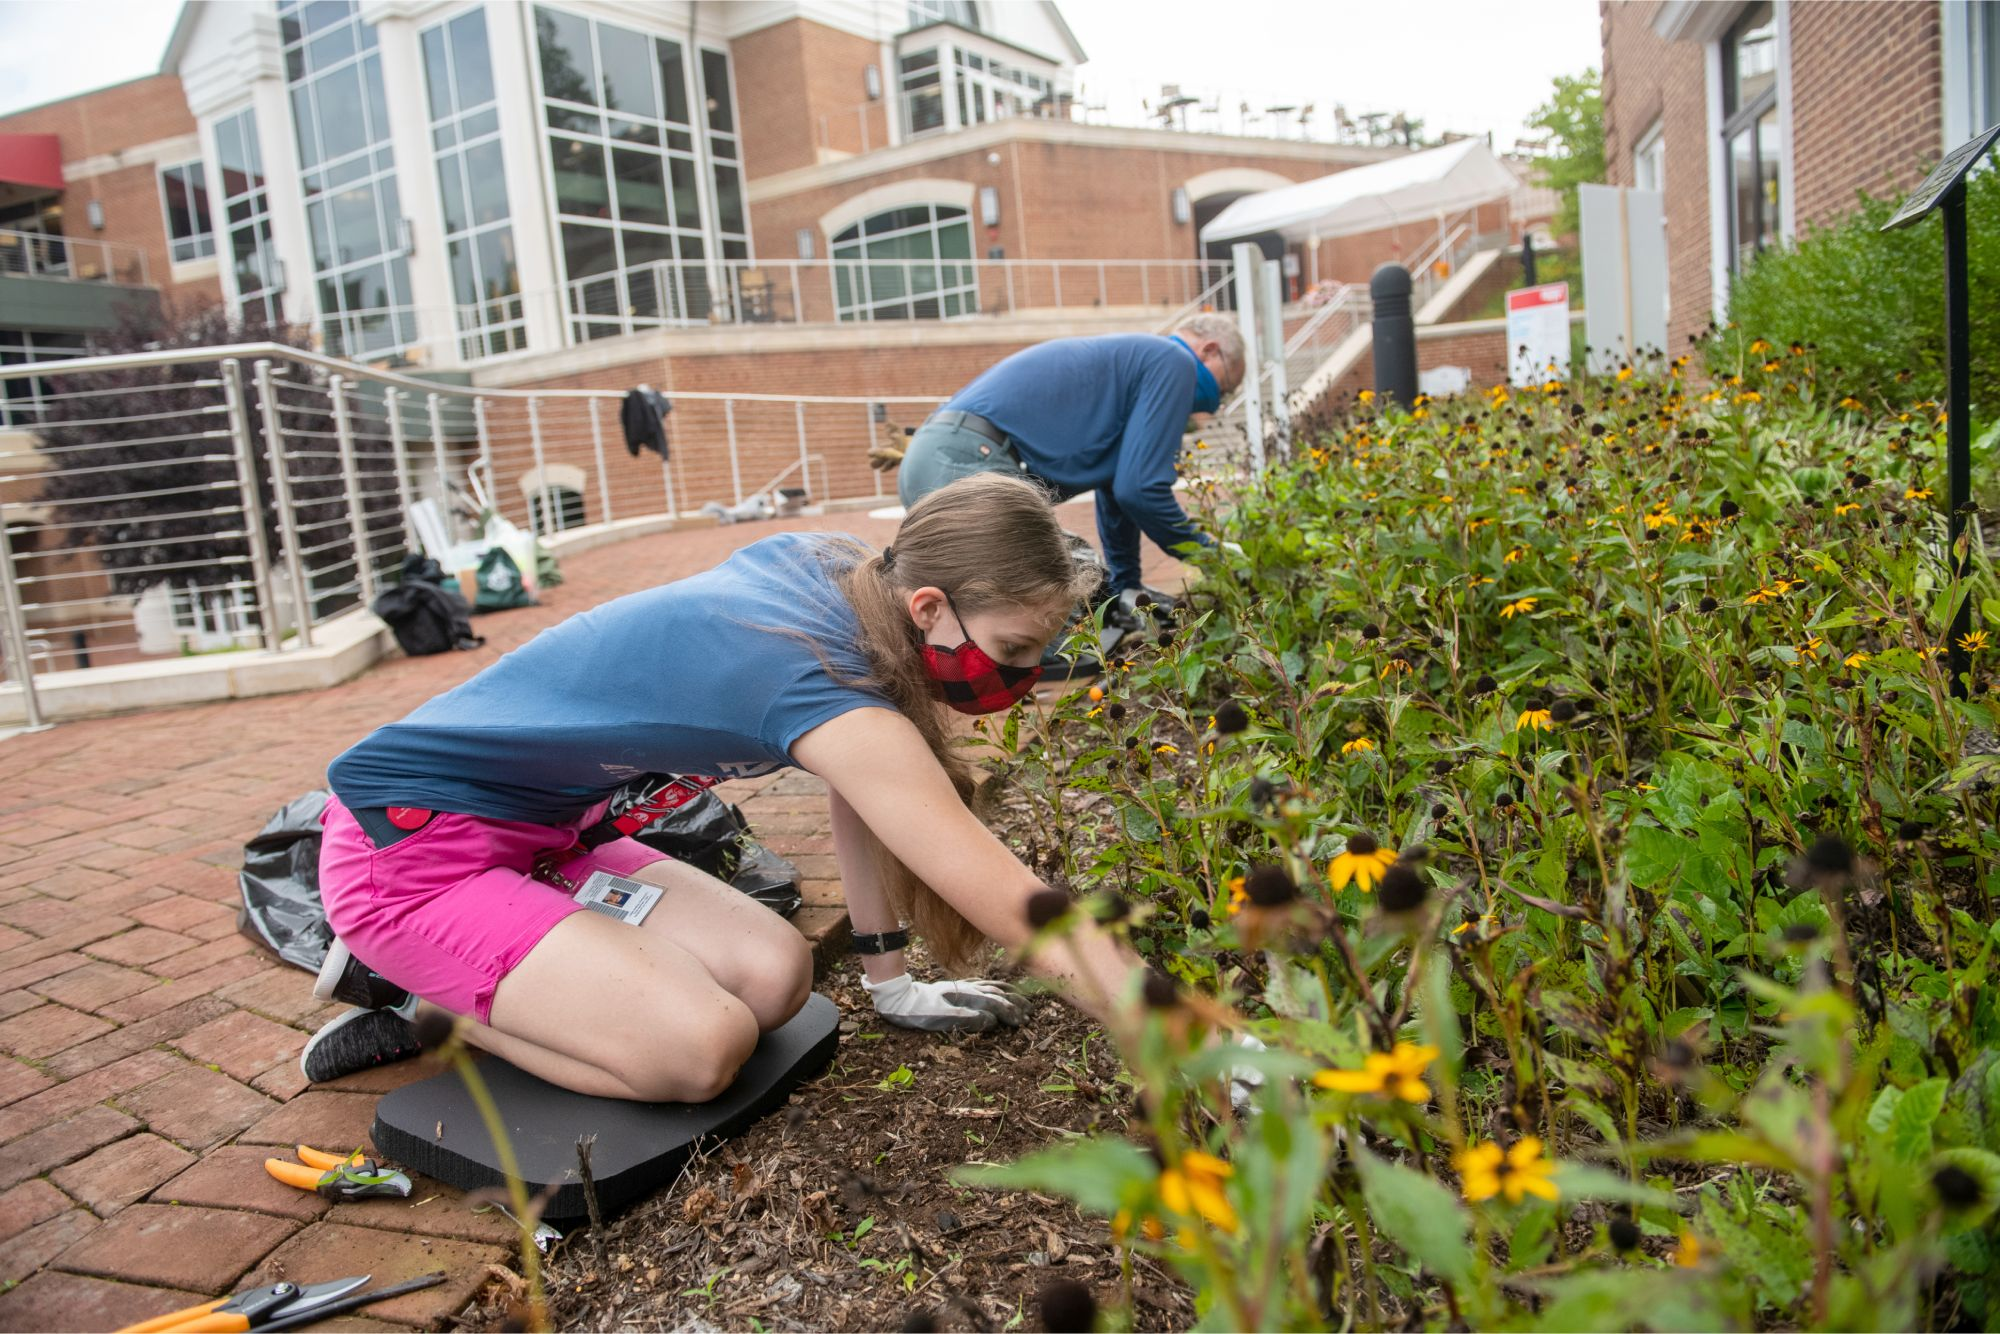 A woman works on pulling up weeds outside Drysdale Student Center